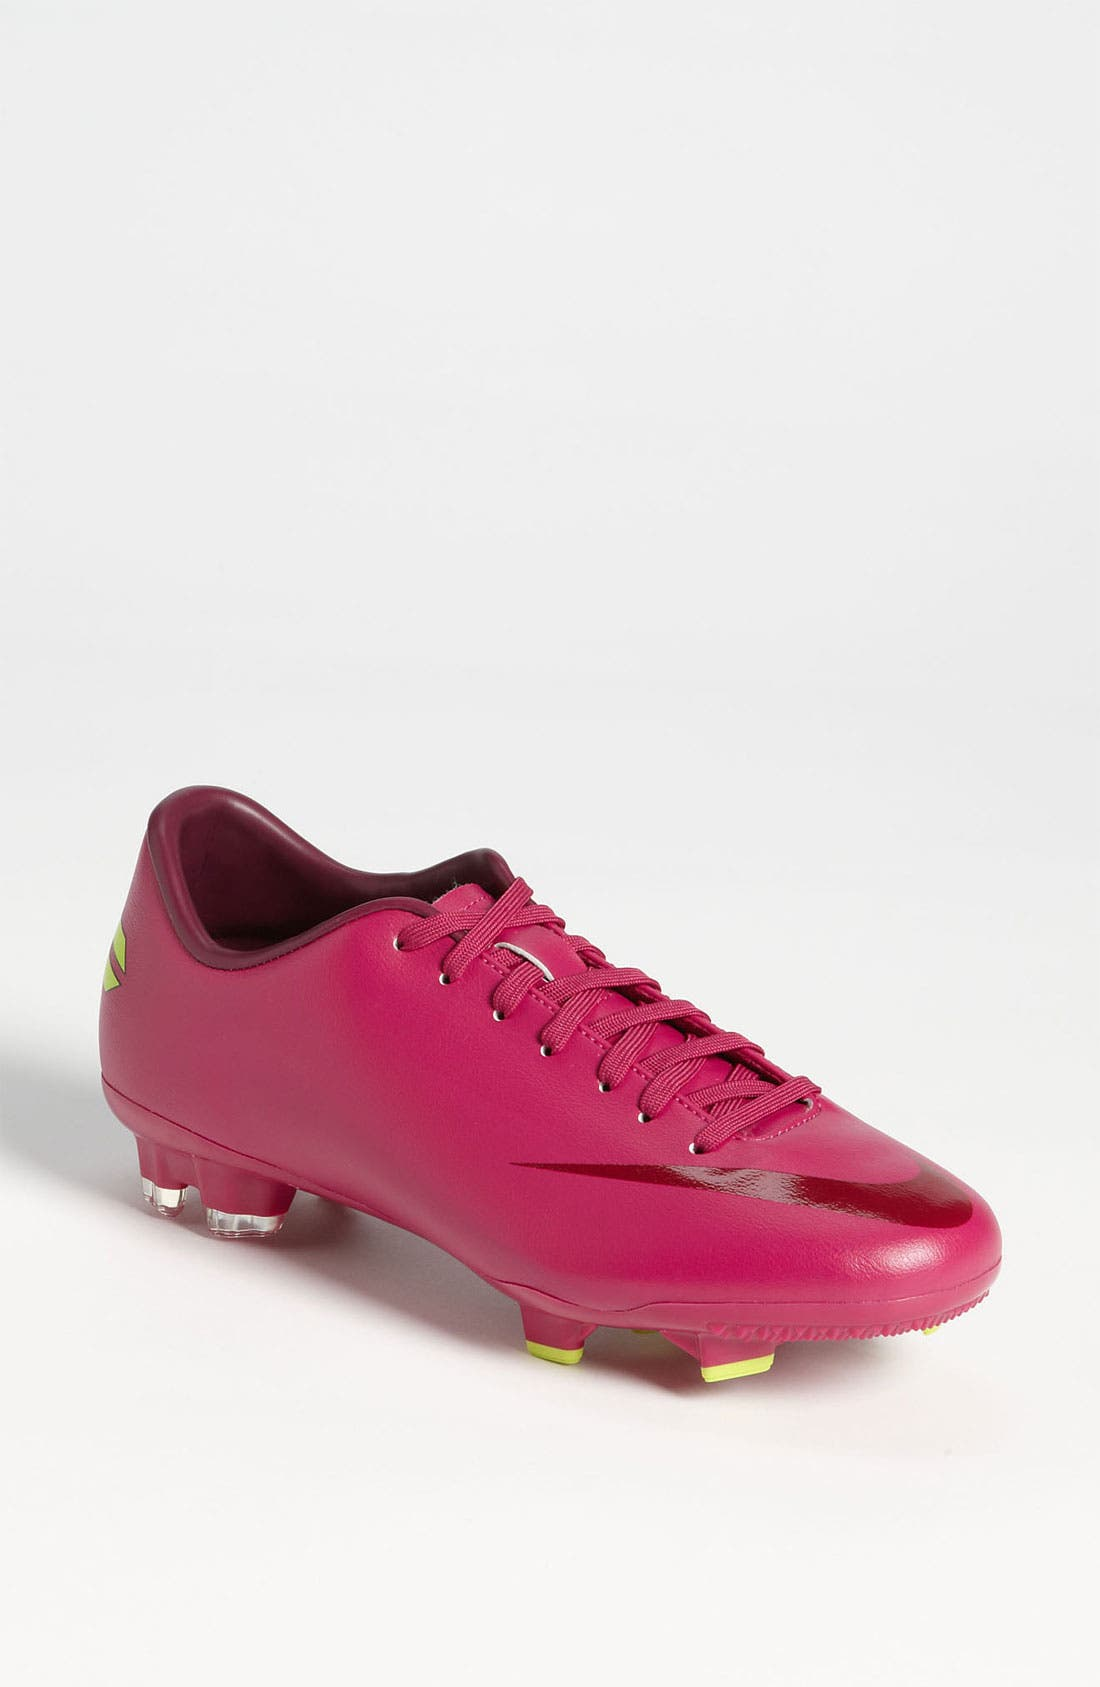 Main Image - Nike 'Mercurial Victory III' Soccer Cleat (Women)